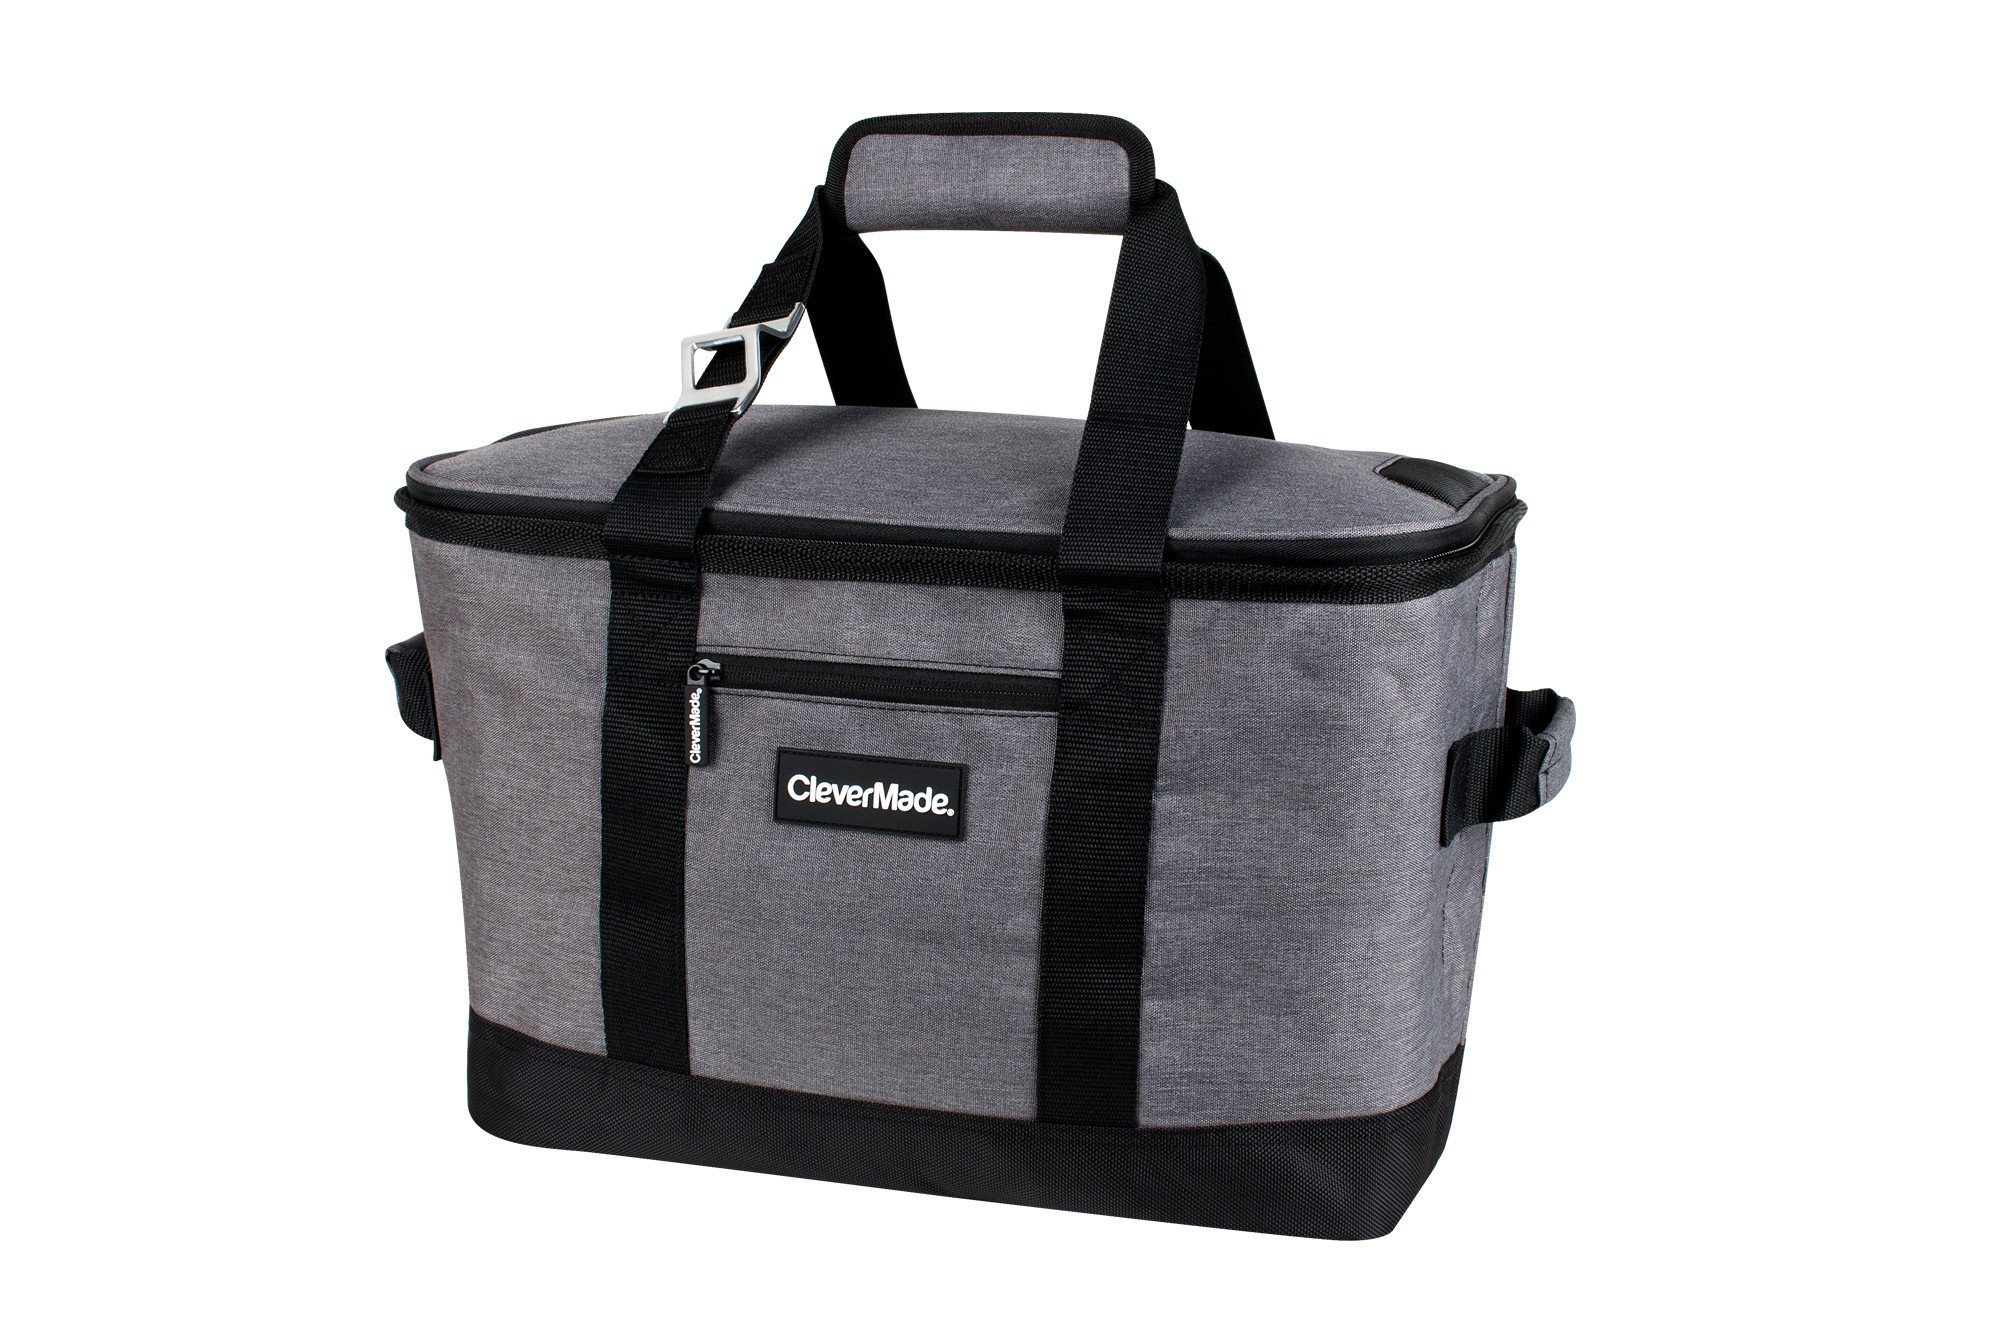 Tahoe Cooler Sturdy Collapsible Holds 50 Cans Ice Soft Sided Coolers Collapsible Cooler Insulated Tote Bag